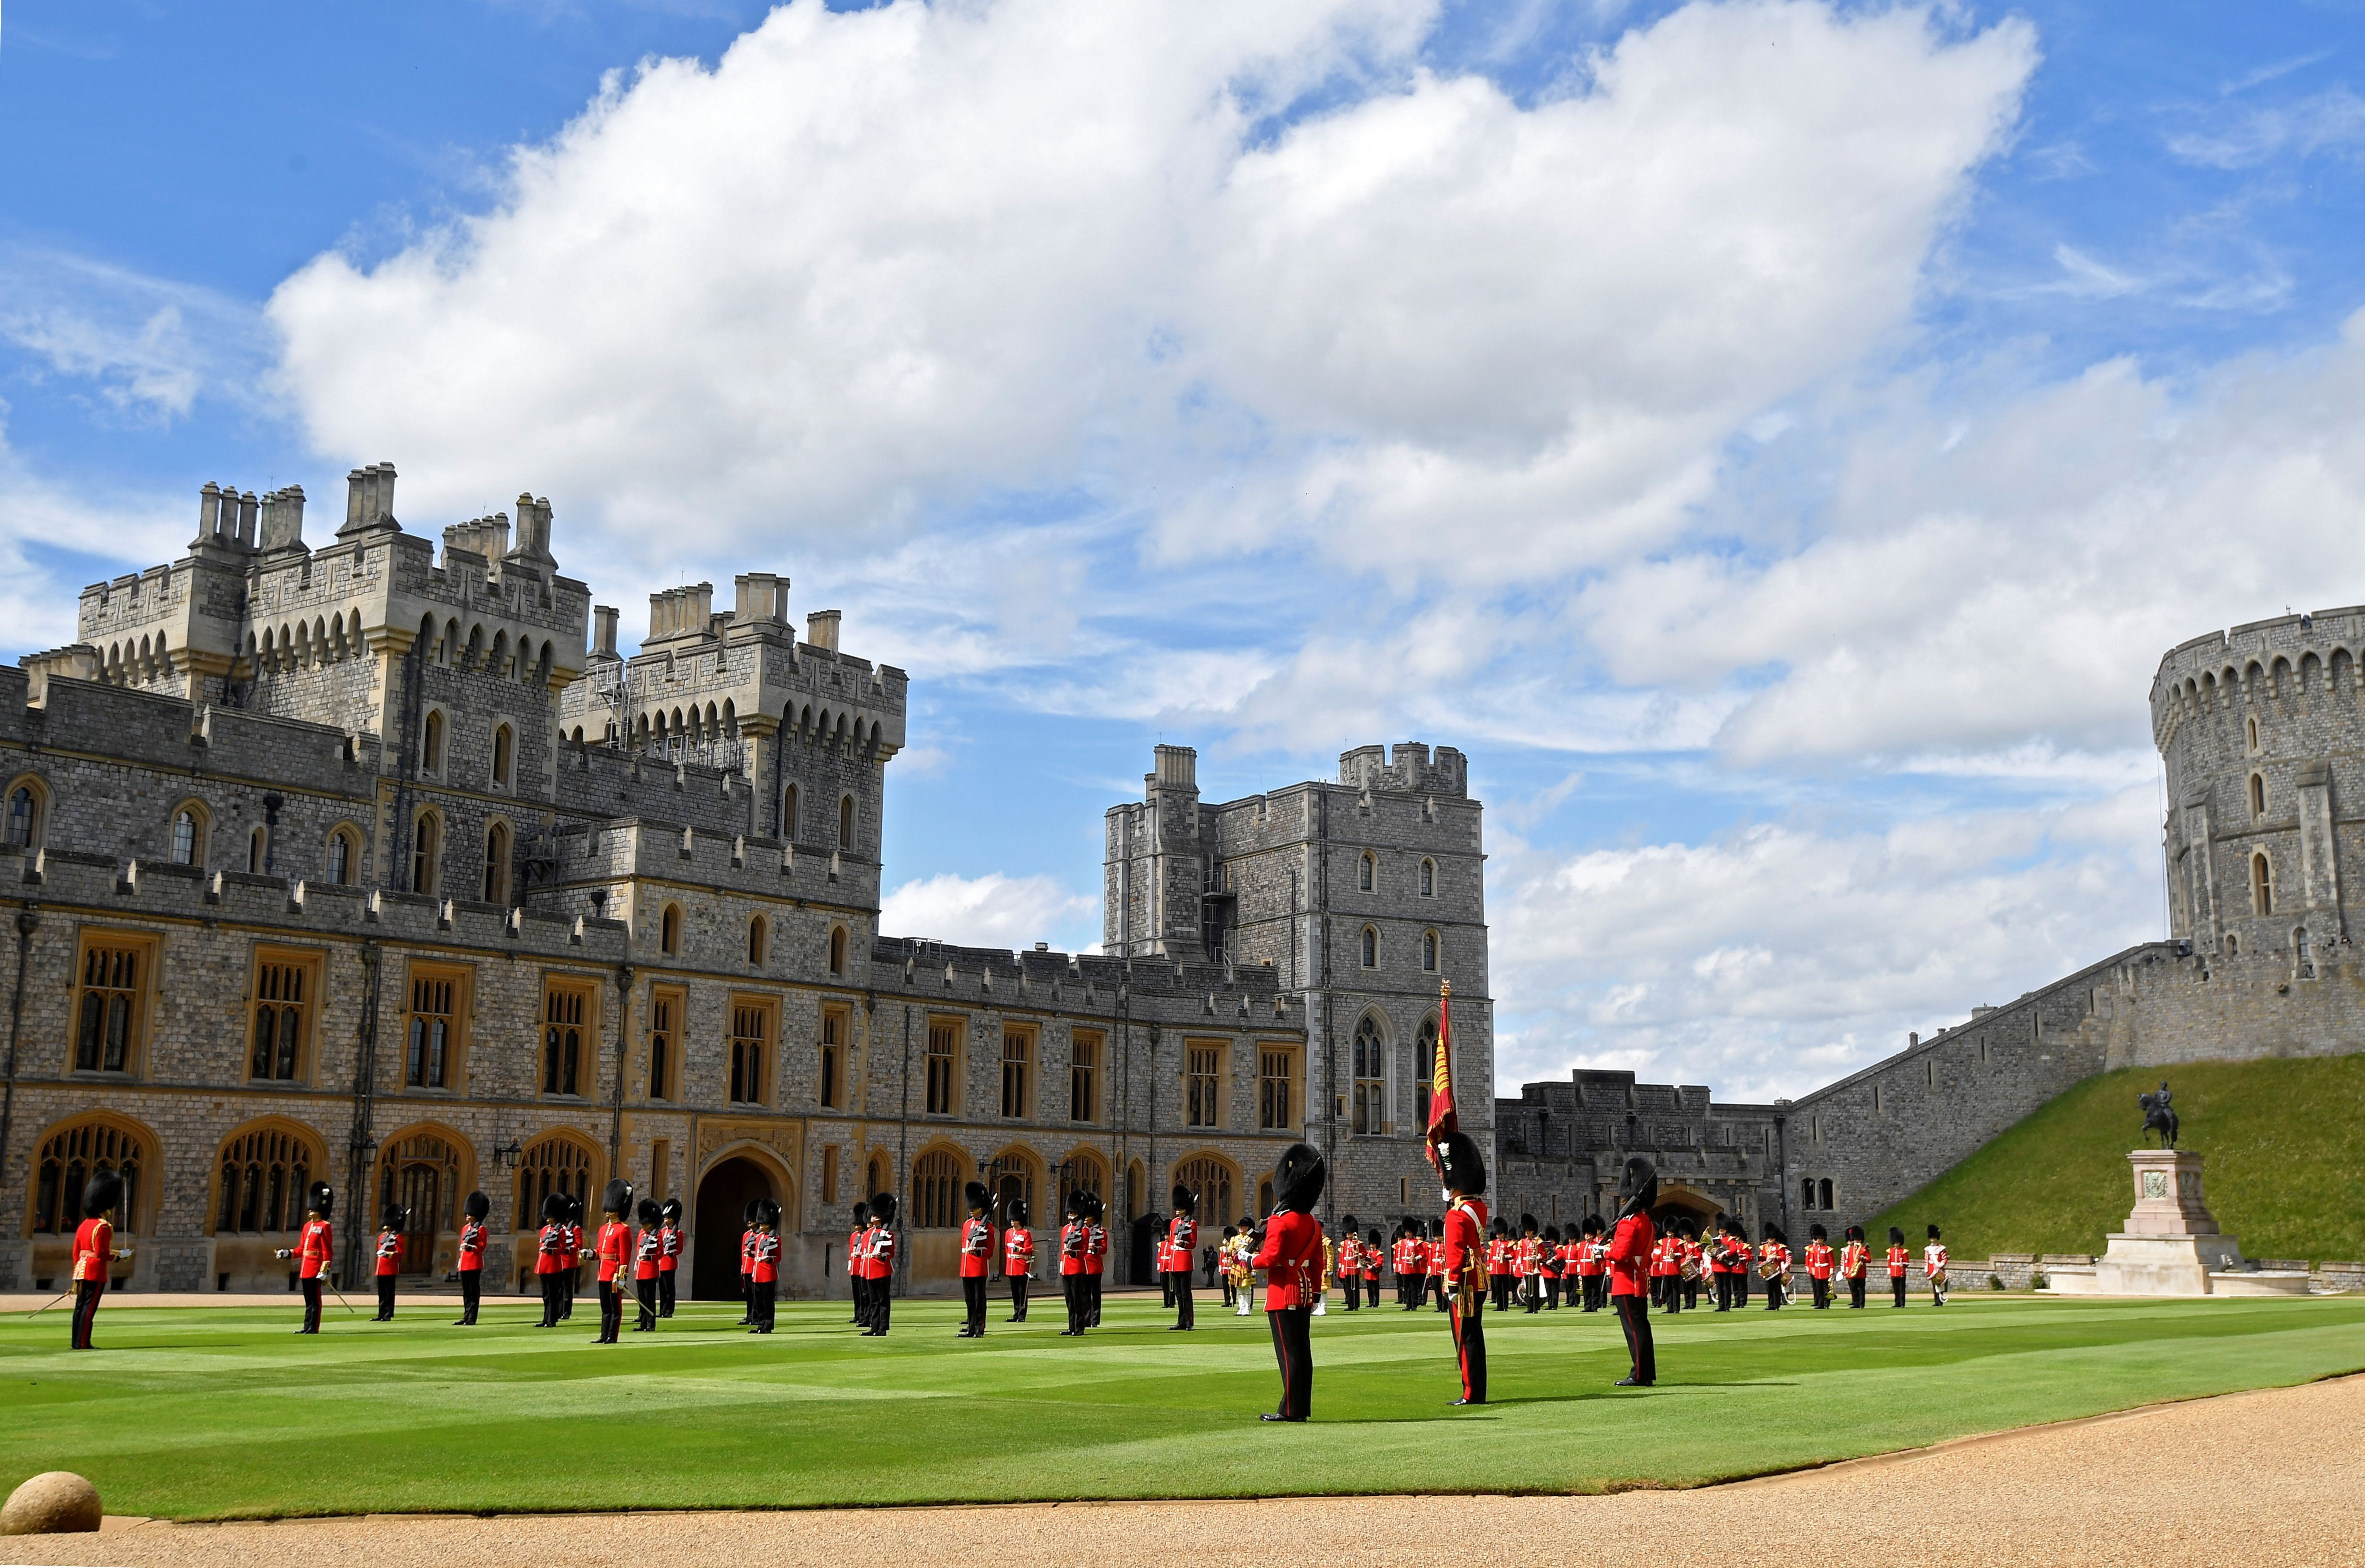 Guardsmen keeping social distance as they stand in formation during Trooping the Colour at Windsor Castle in Windsor, England | Photo: Toby Melville - WPA Pool/Getty Images